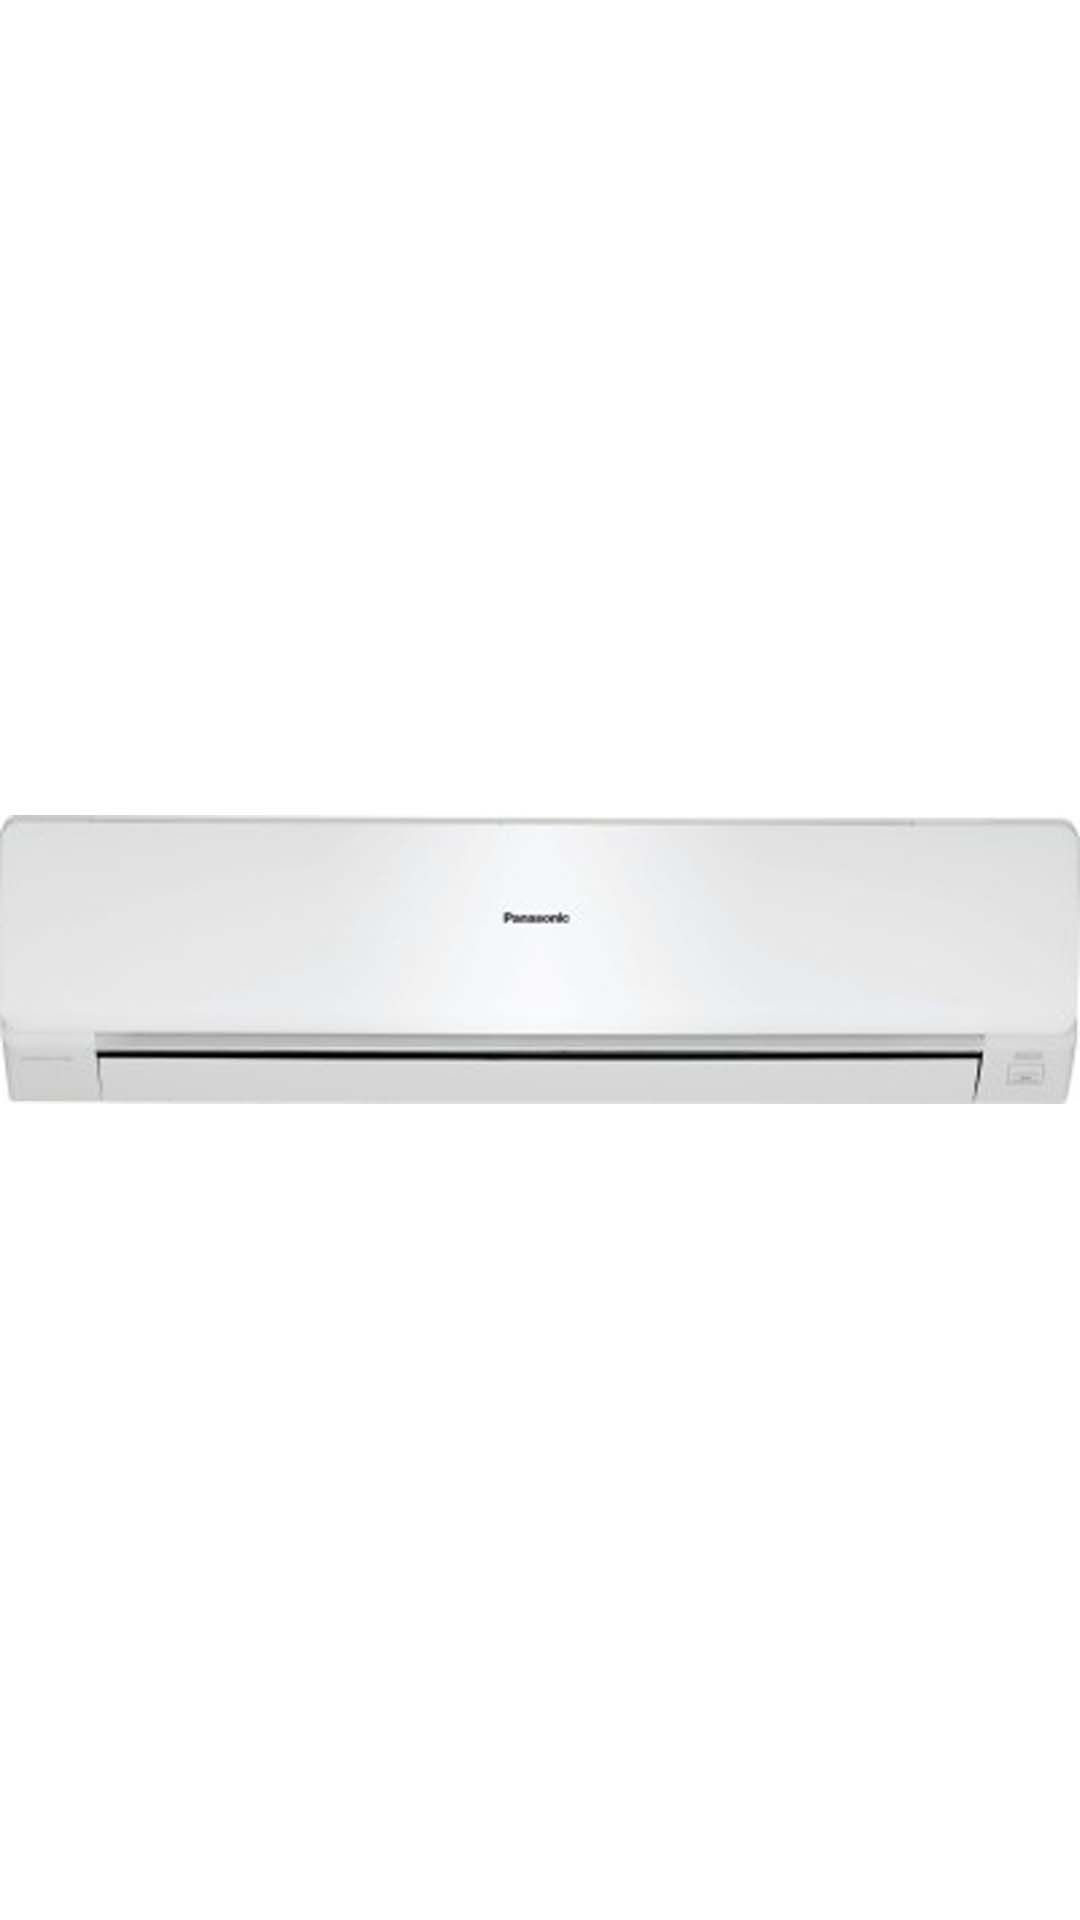 Panasonic CS/CU-UC24RKY2 2 Ton 2 Star Split AC (White)